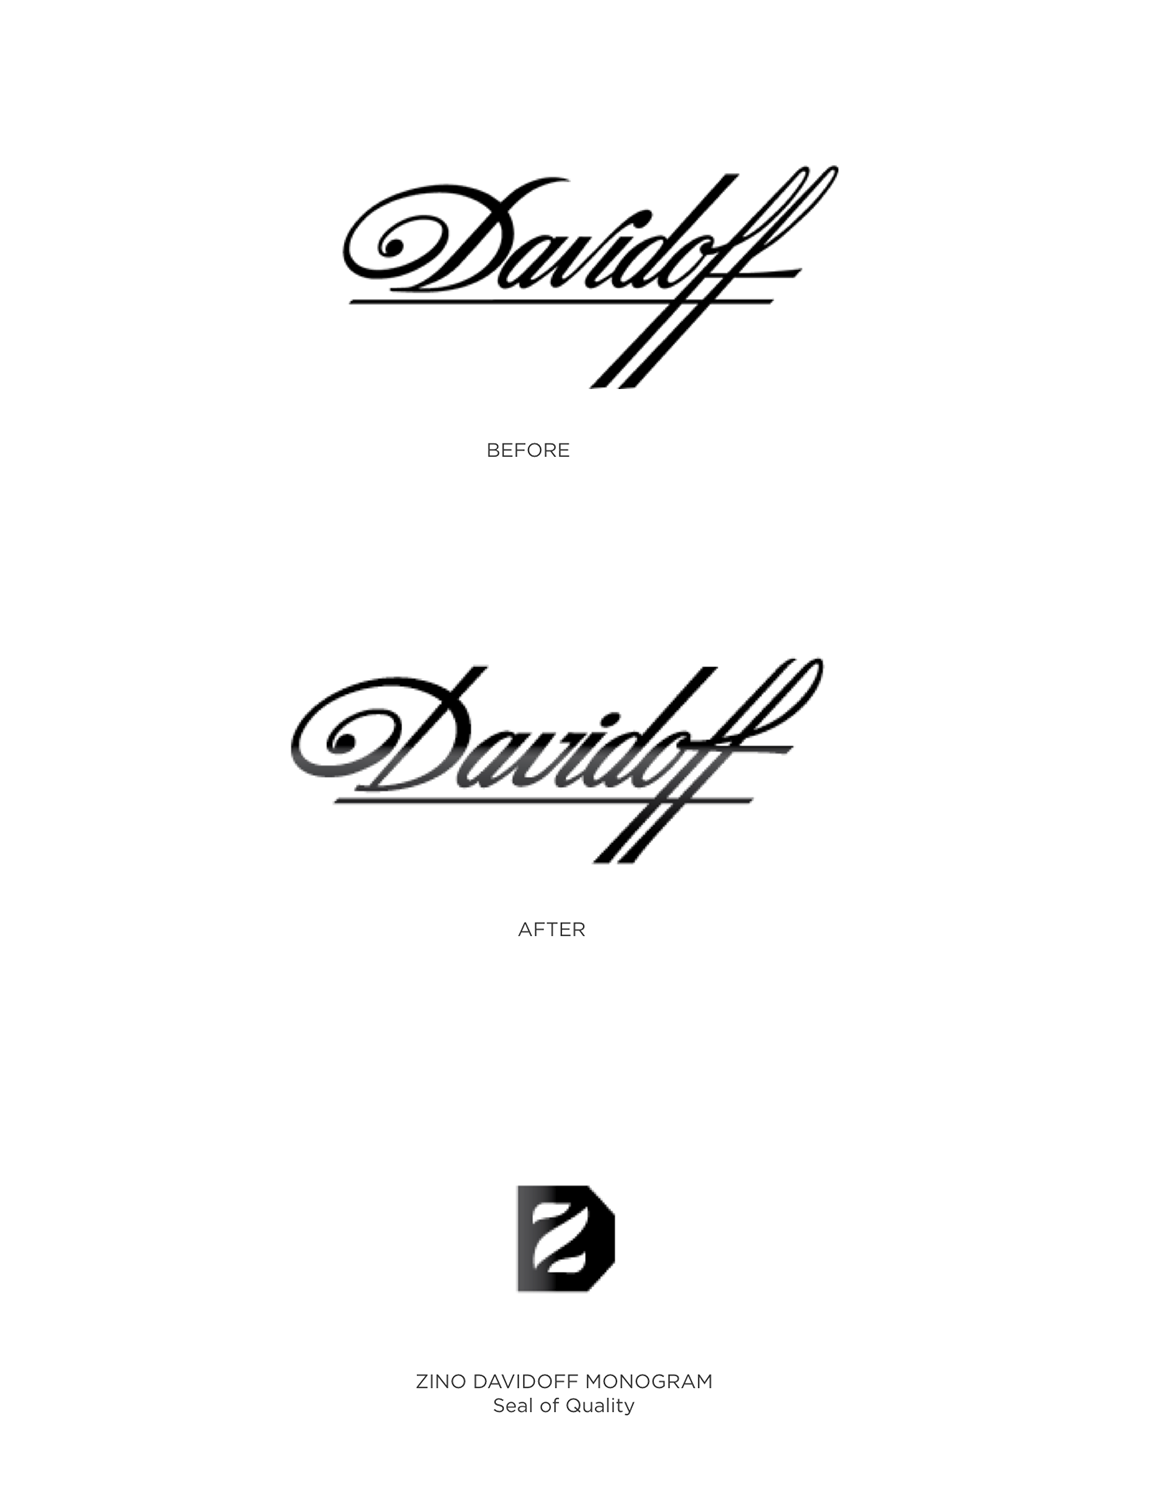 Davidoff_BeforeAfter.png